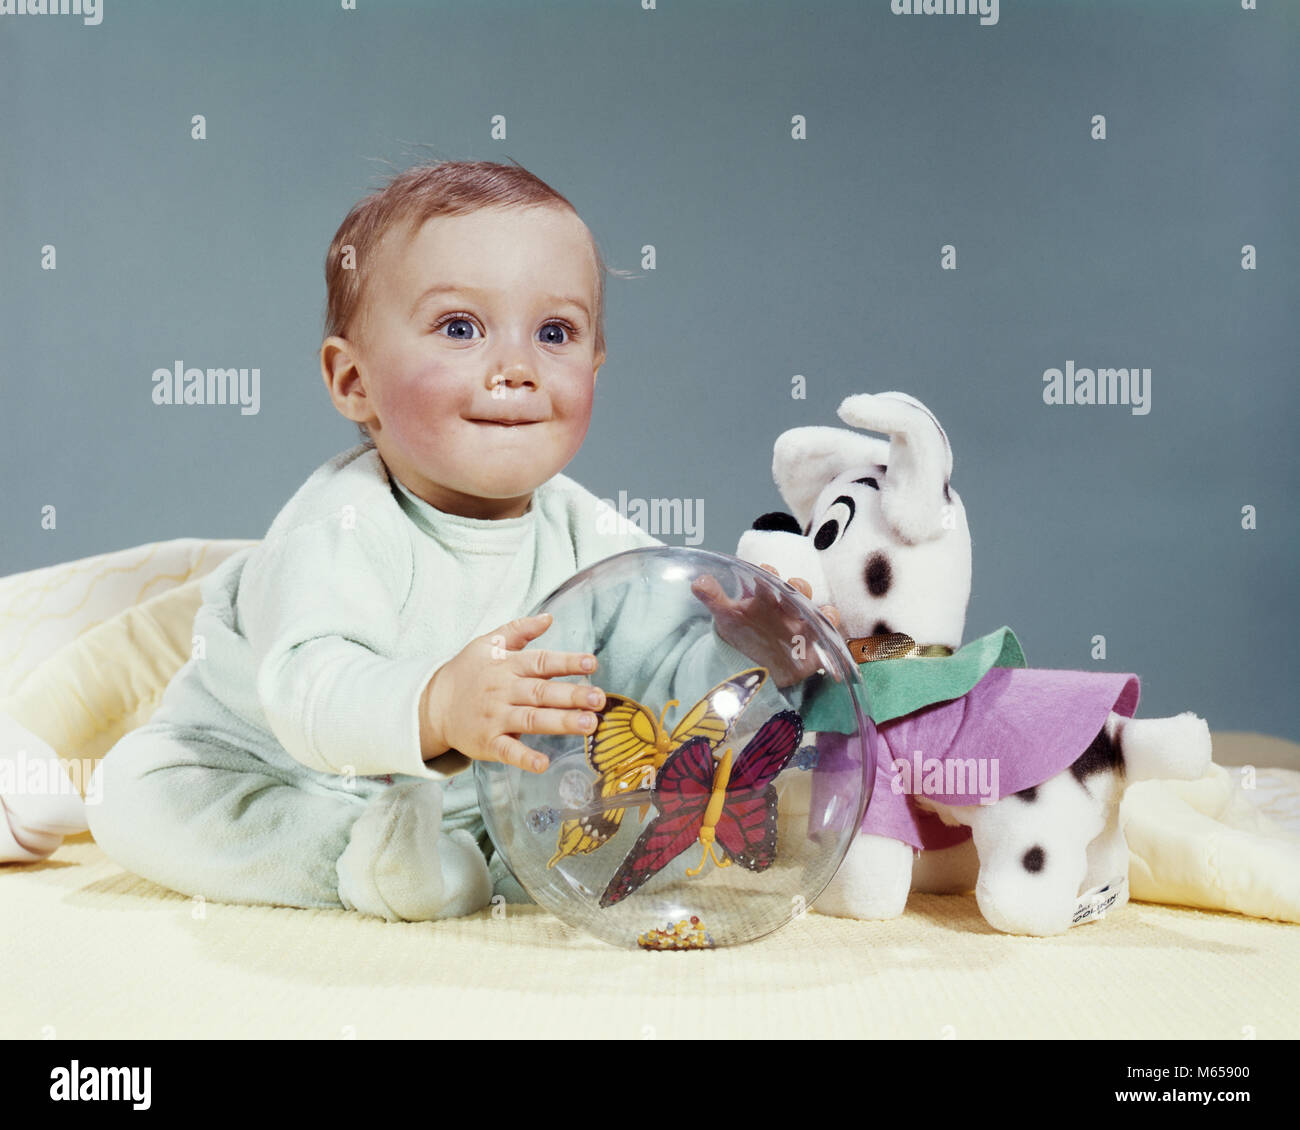 Kids Stock A Wide Selection Of Luxury Premium Cotton: Children Playing 1960s Stock Photos & Children Playing